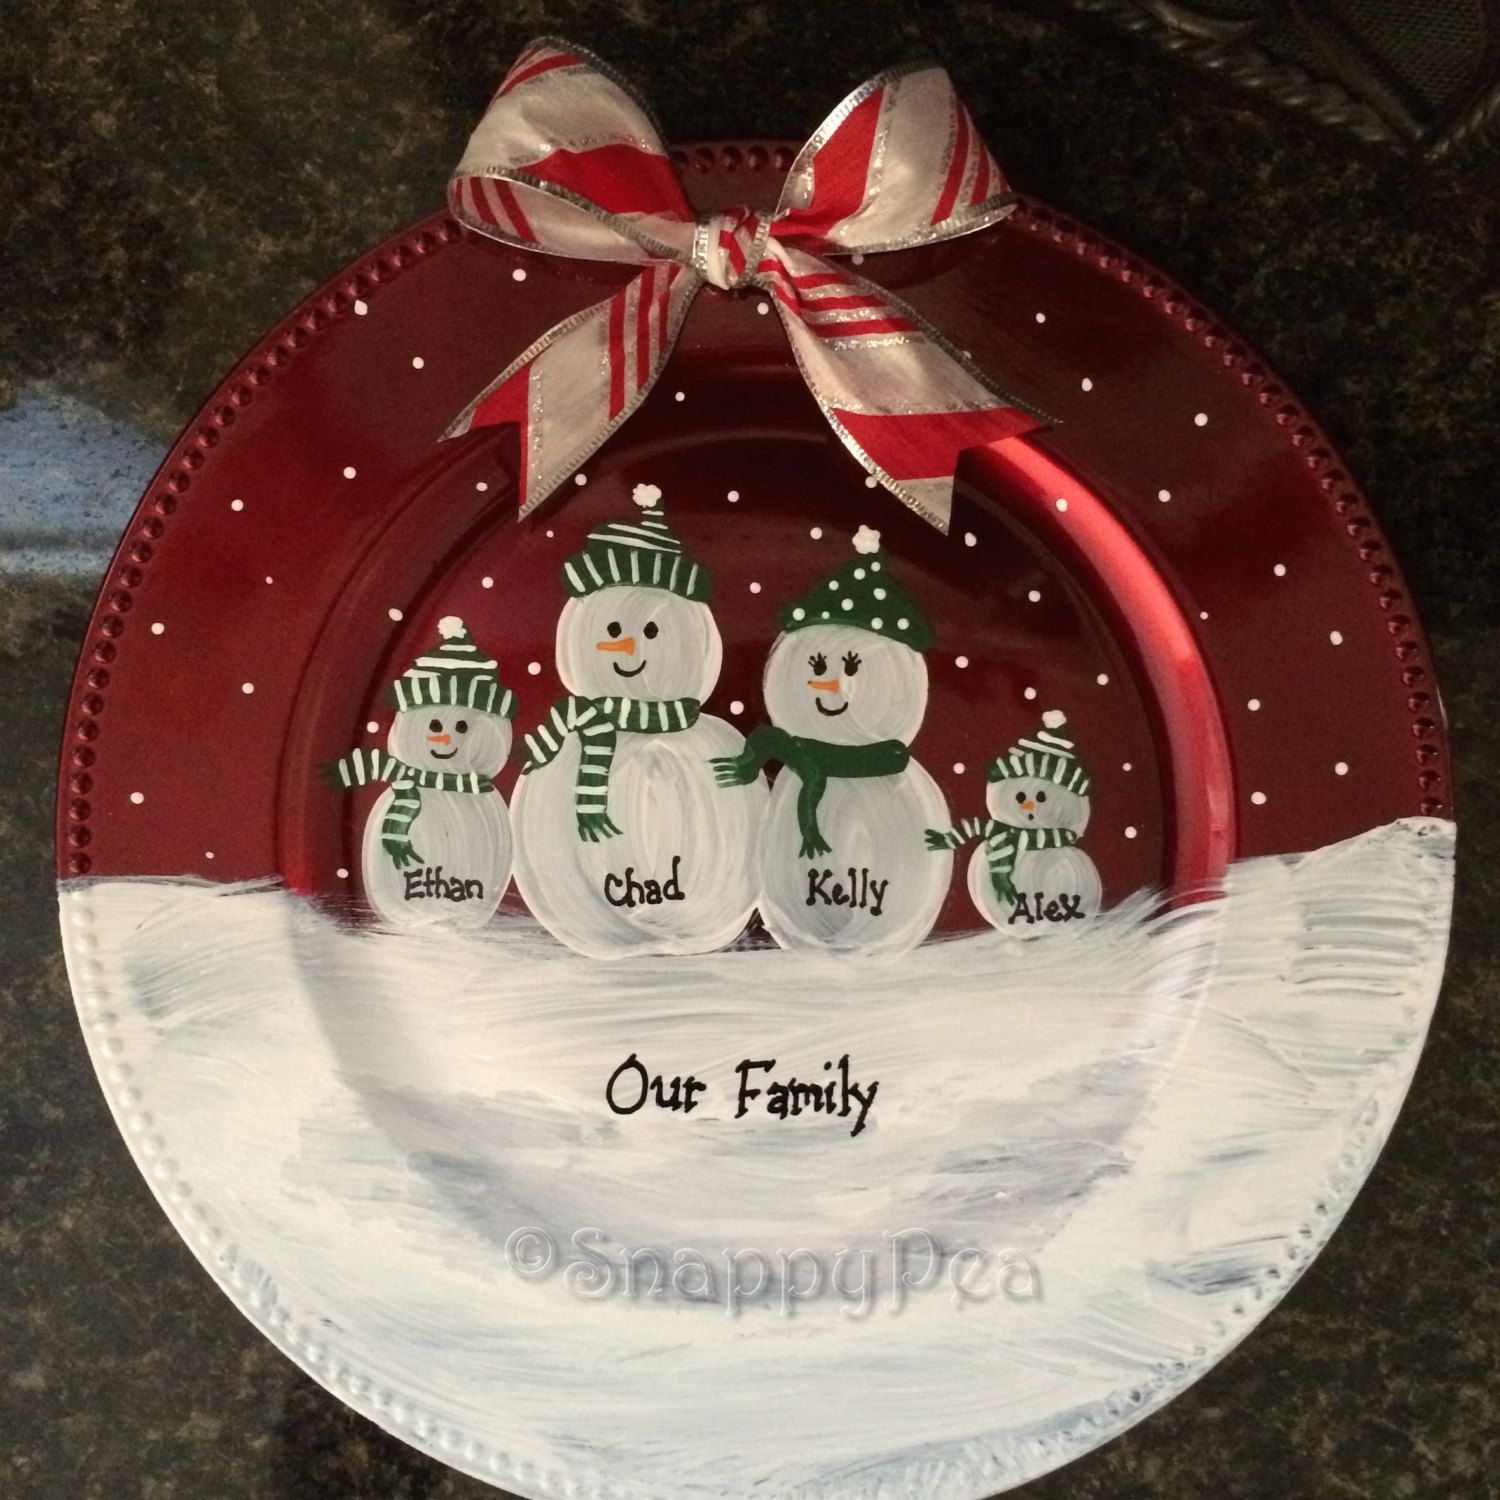 Decorative Christmas Plates For The Wall Personalized Hand Painted Decorative Snowman Family Charger